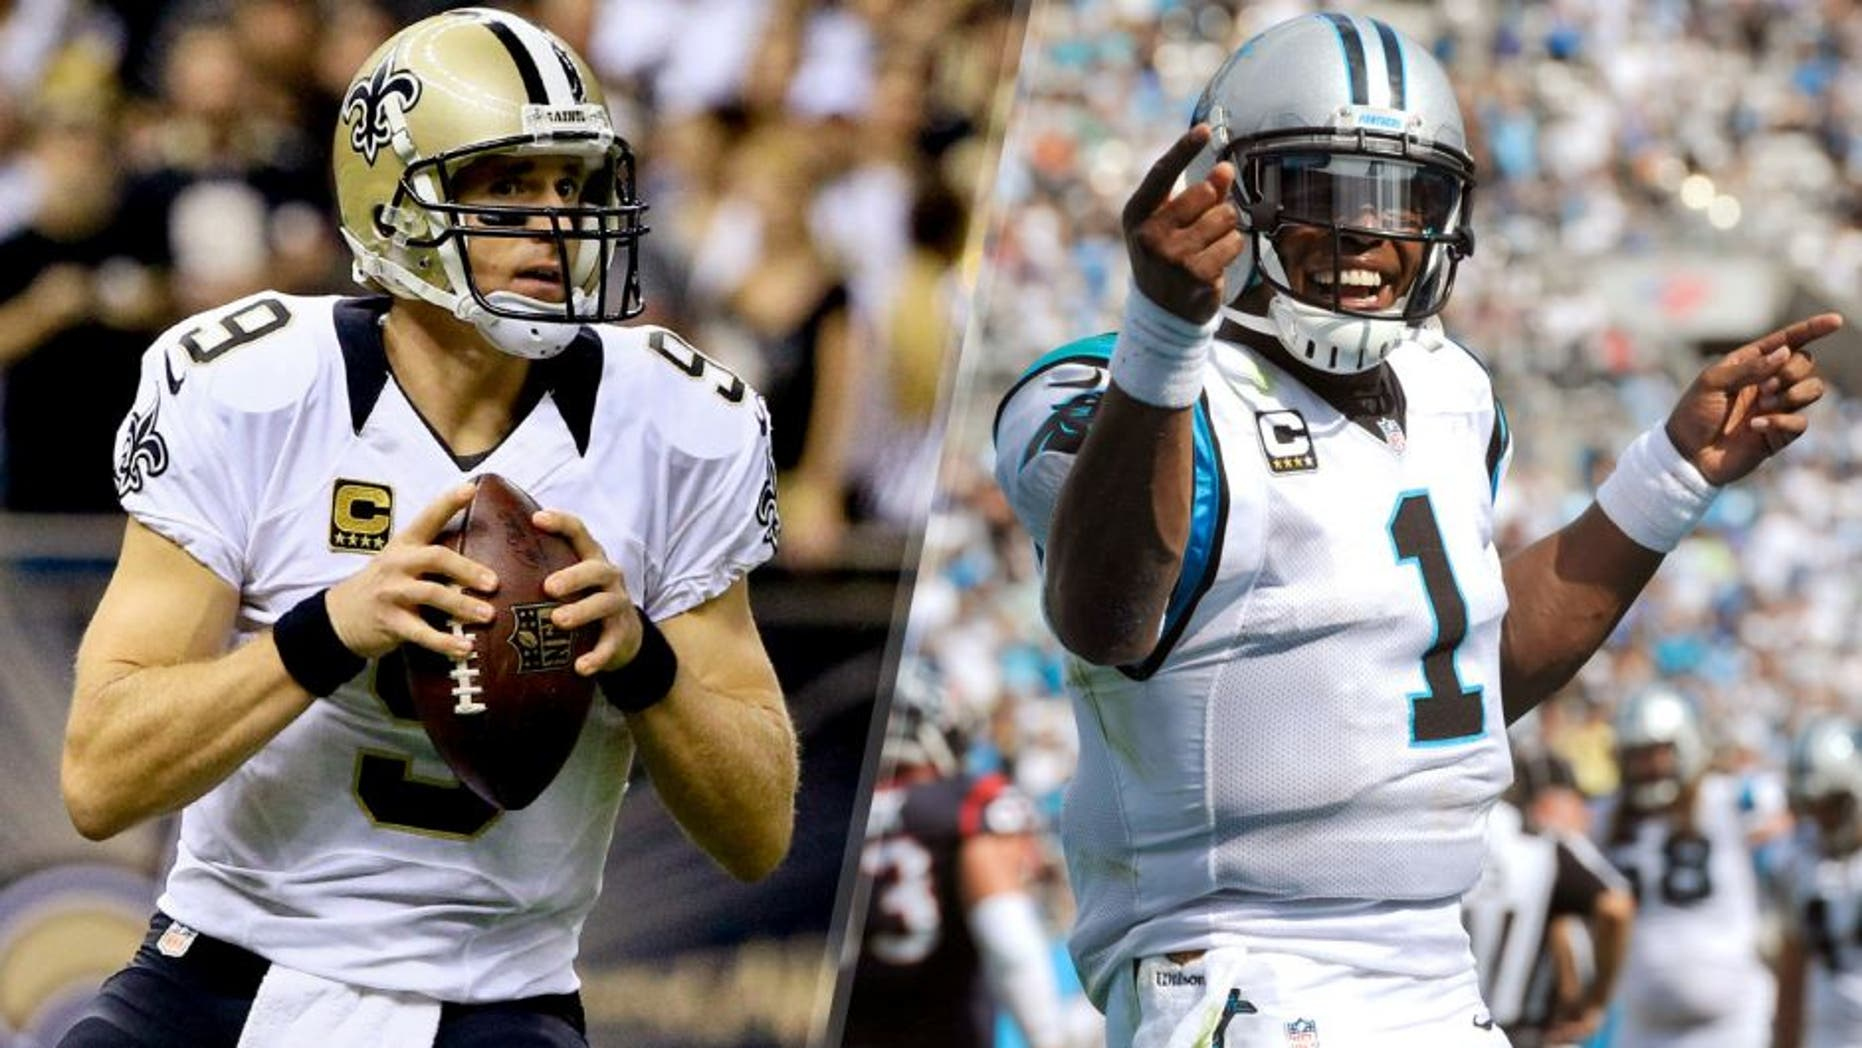 Quarterbacks Drew Brees, left, of New Orelans and Cam Newton of Carolina will play for the NFC South division title Sunday.